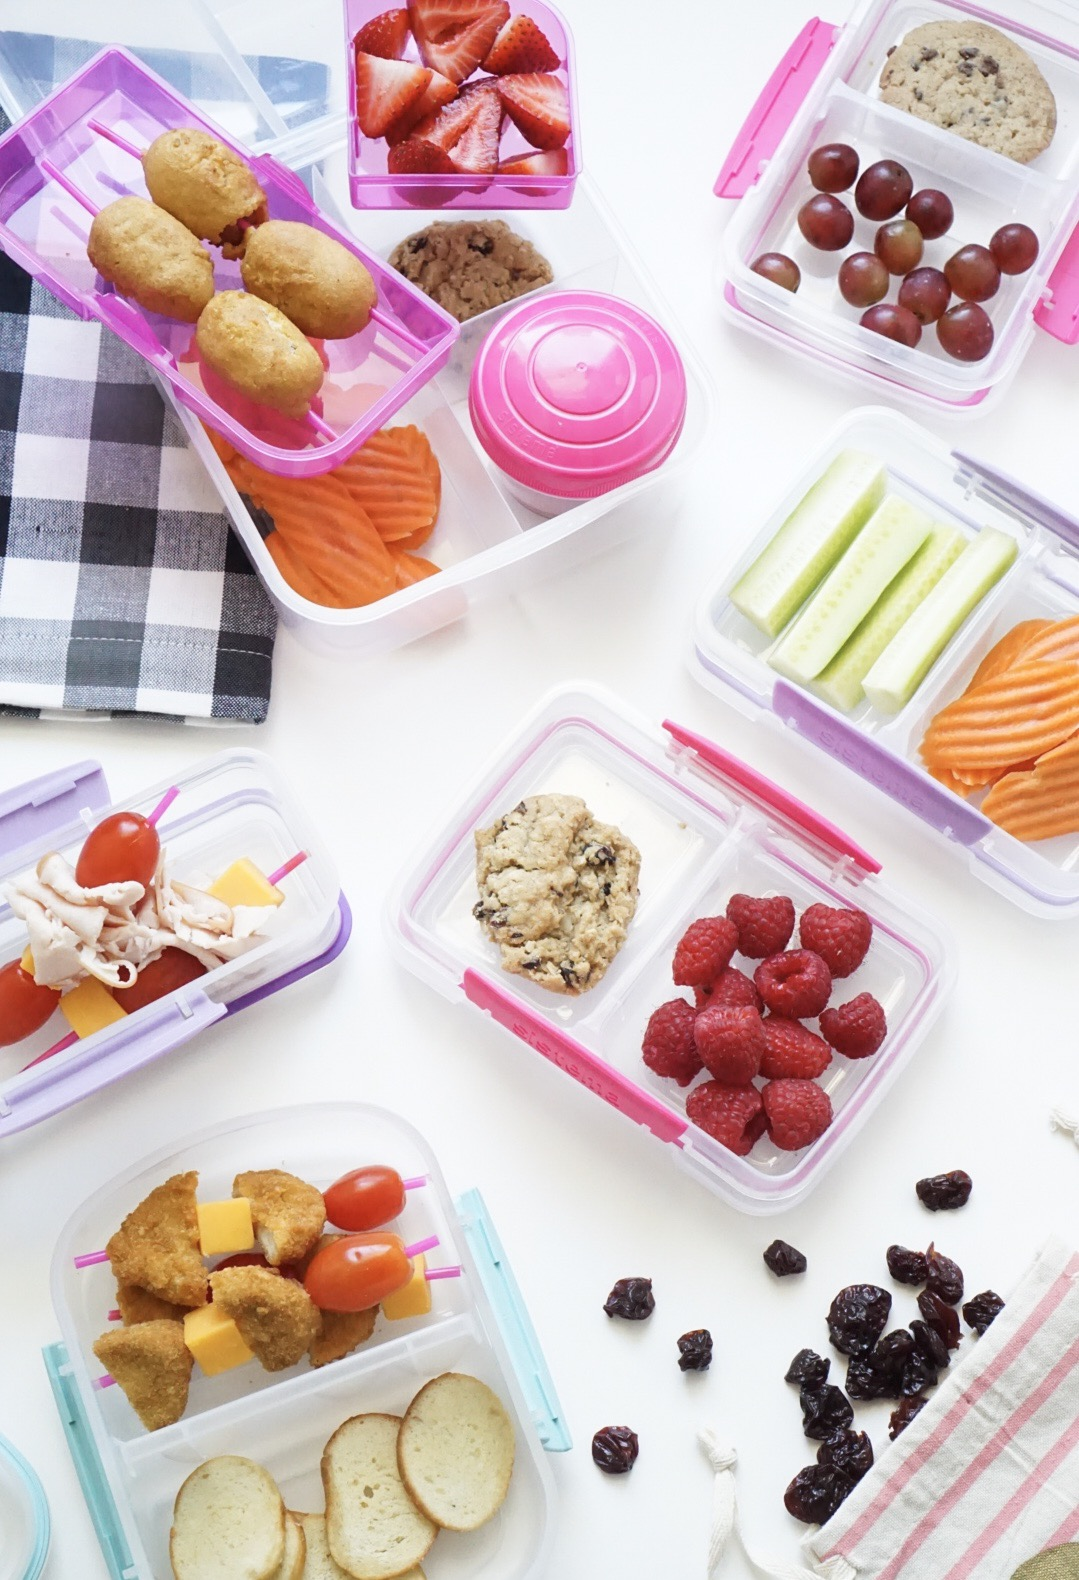 20 lunch ideas your kids will actually eat! (That aren't sandwiches!) Plus, how to meal prep school lunch for a stress-free week with a free printable. #schoollunch #bentolunch #mealprep #lunchmealprep #lunchboxmeals Click through for the details. | glitterinc.com | @glitterinca